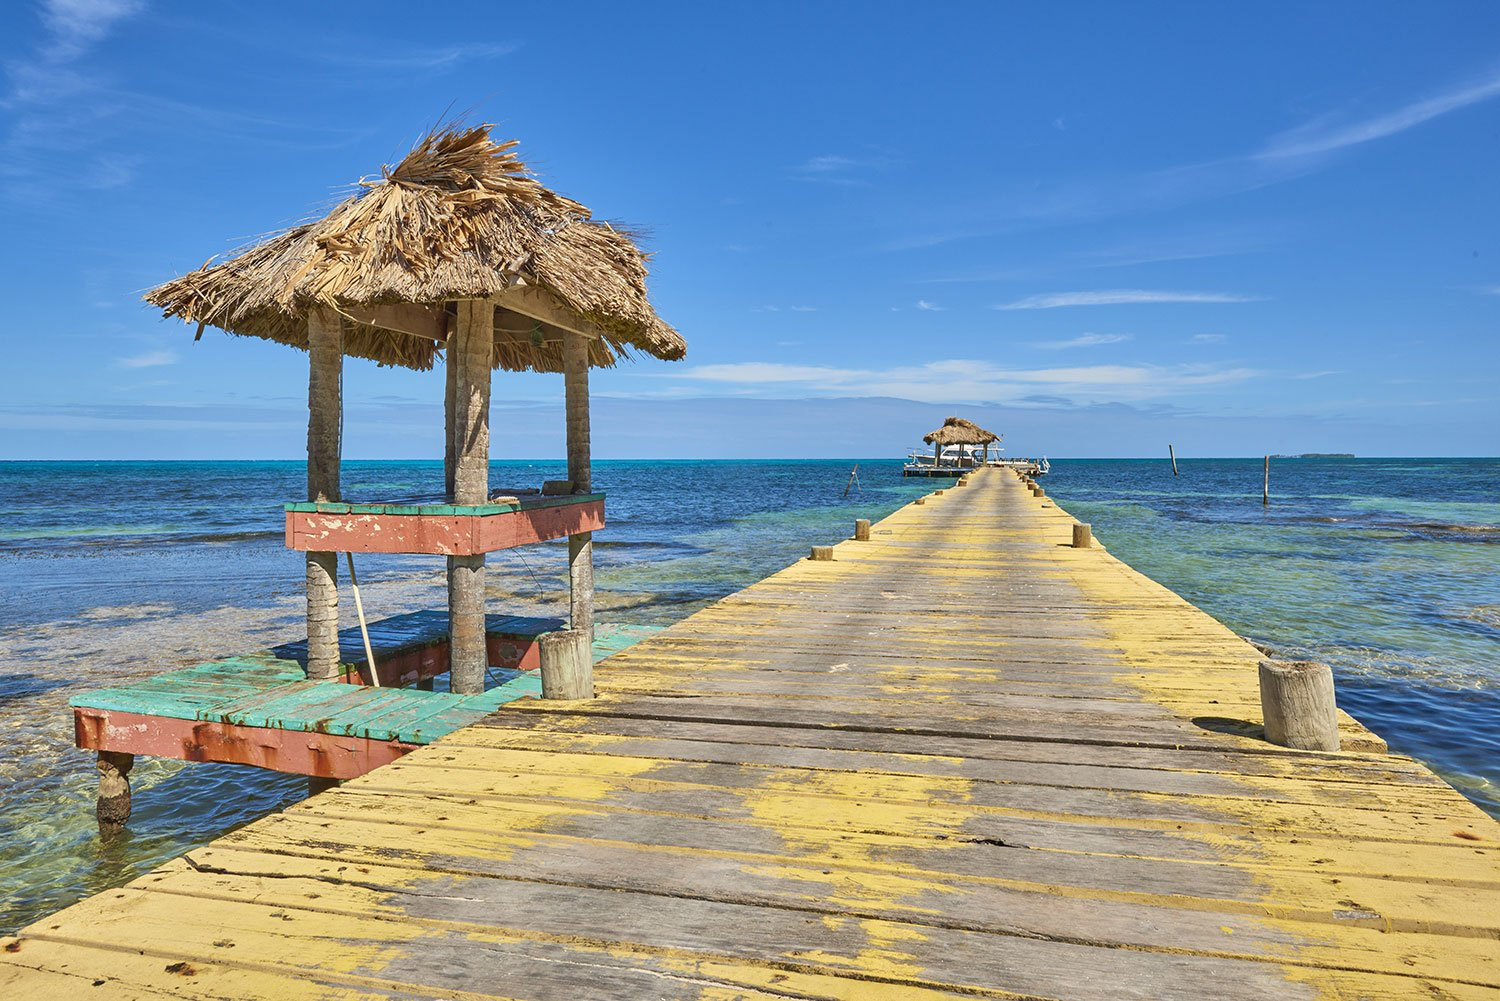 Wooden pier with yellow paint leading into the sea in Belize